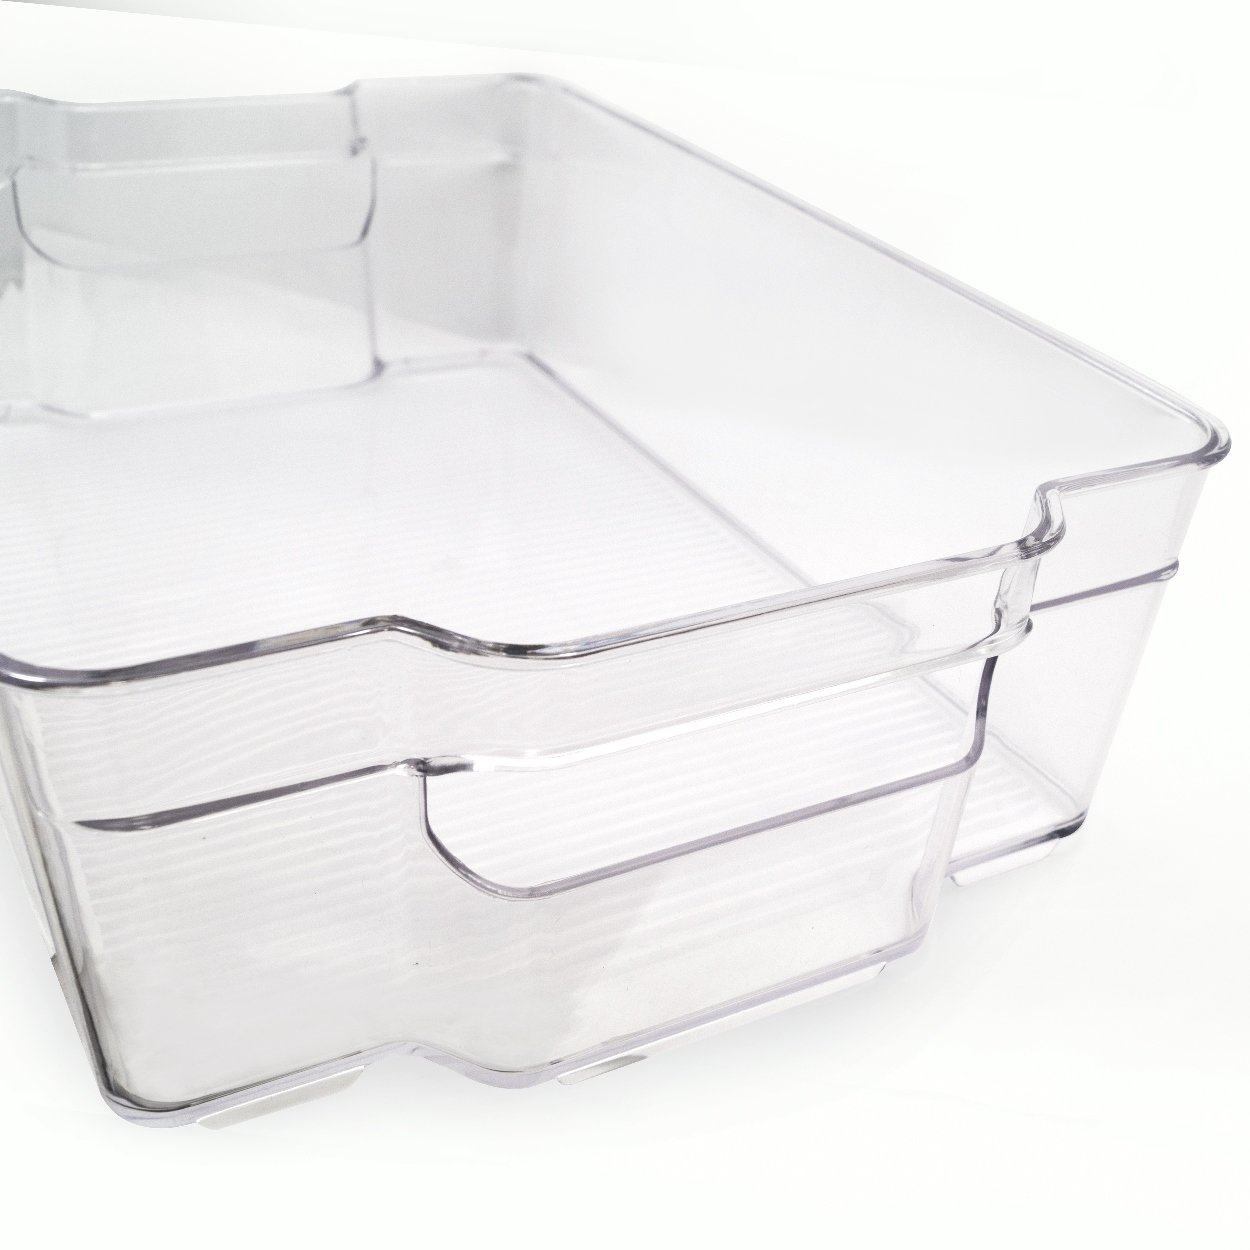 Cook Pro 762 Perfect Refrigeration and Organizer Set Clear Set of 3